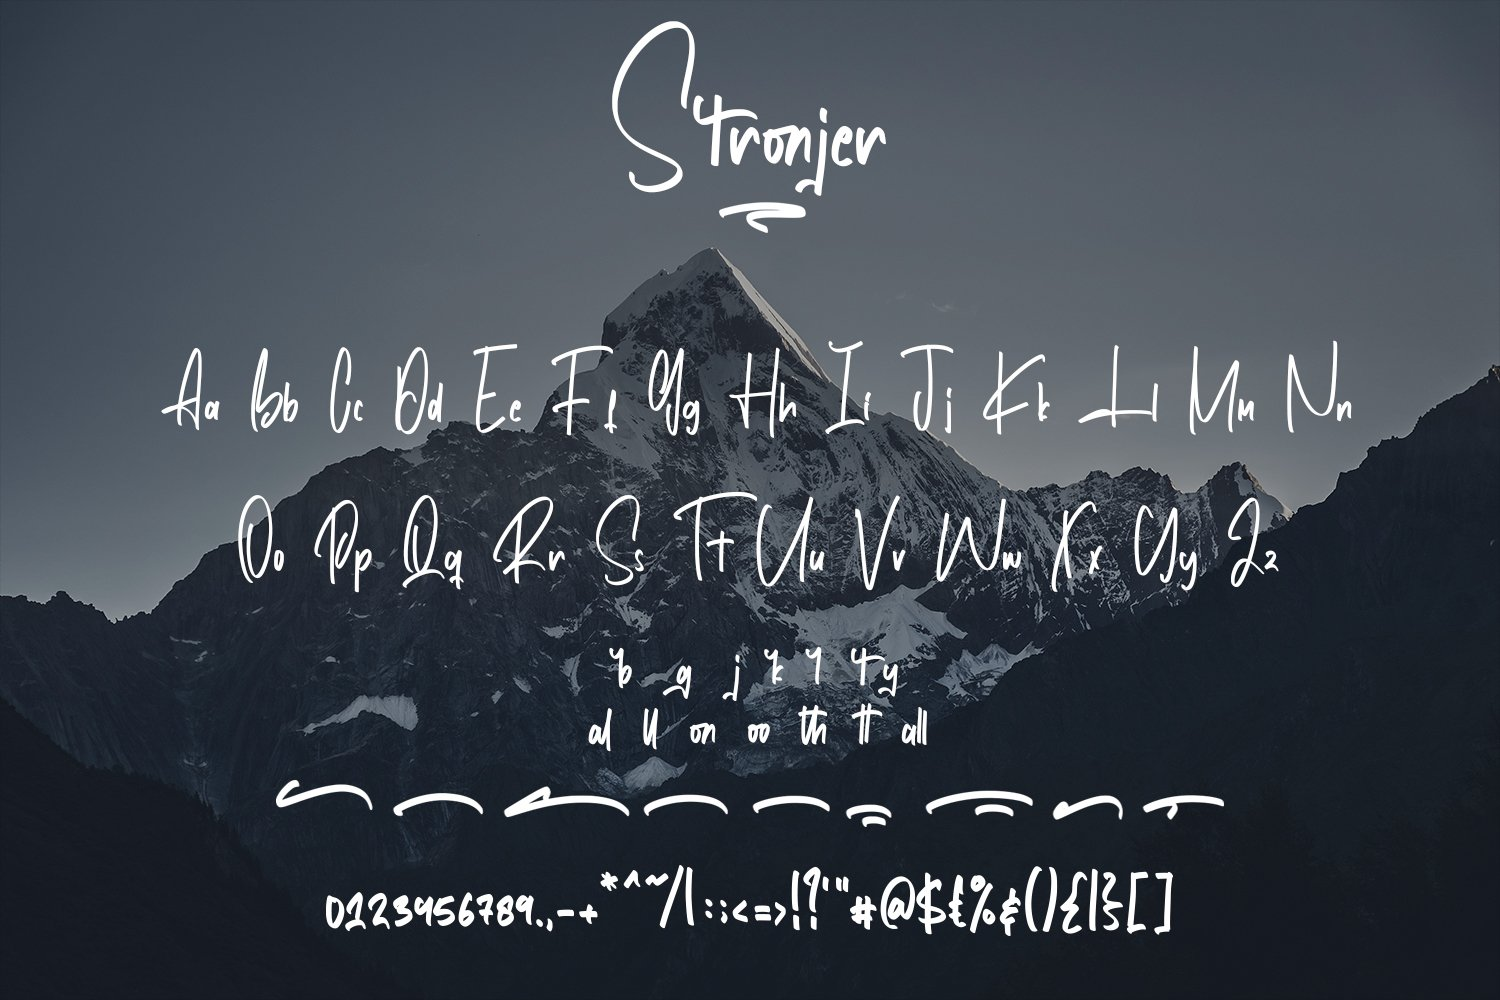 Stronjer - Script Fonts example image 5